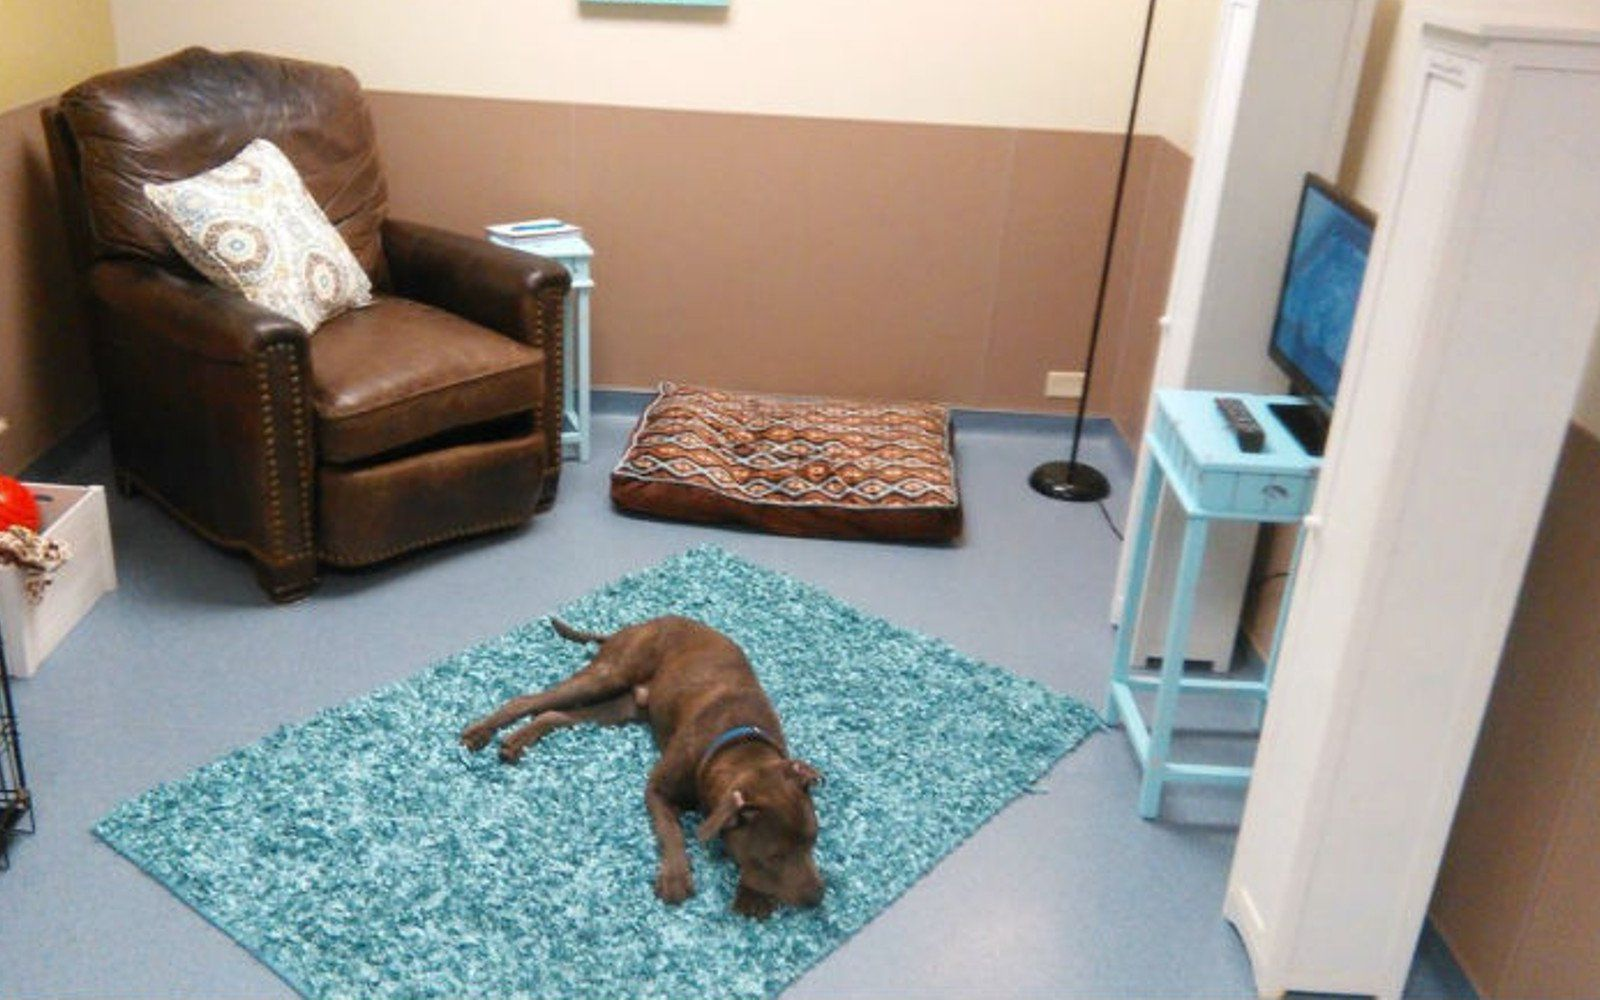 This Fantastic Animal Shelter Made a Special Room so Dogs